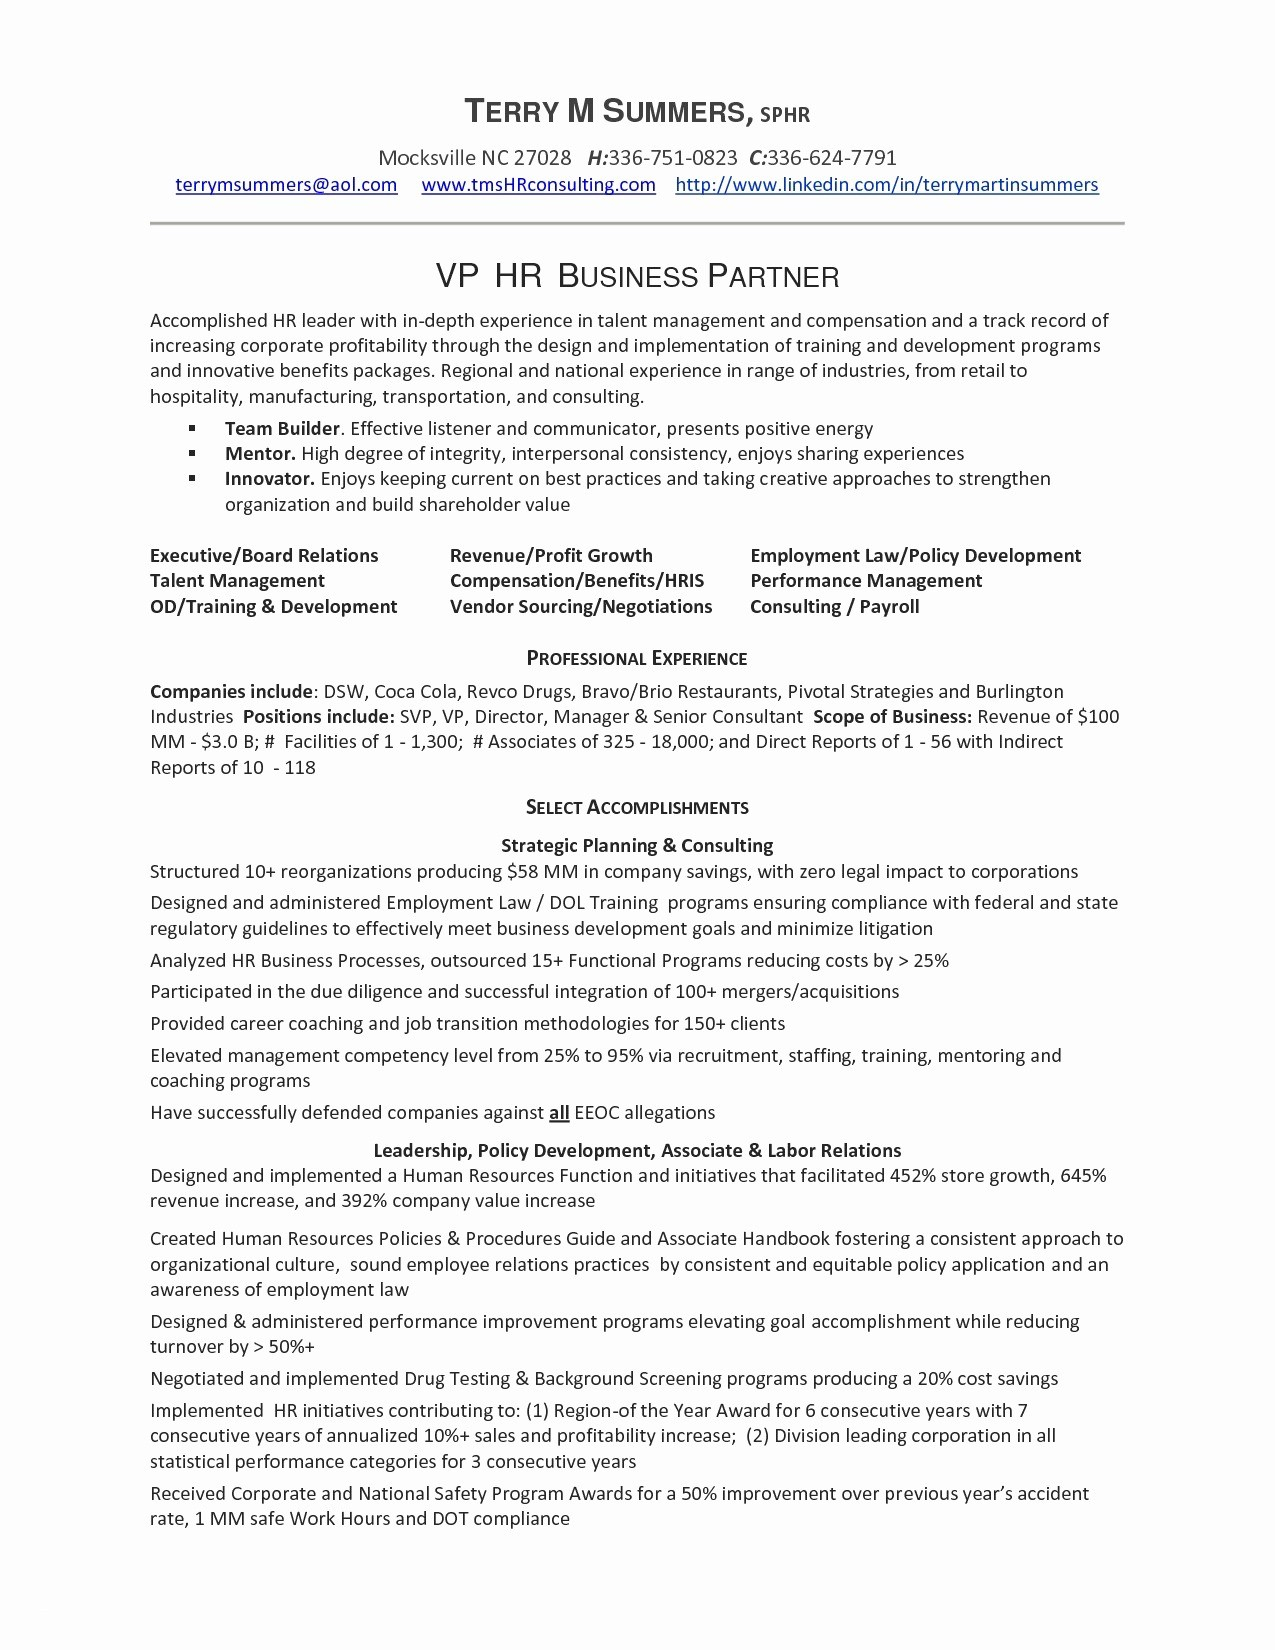 Business Analyst Healthcare Resume - Healthcare Business Retail and Education are Examples Of Industries